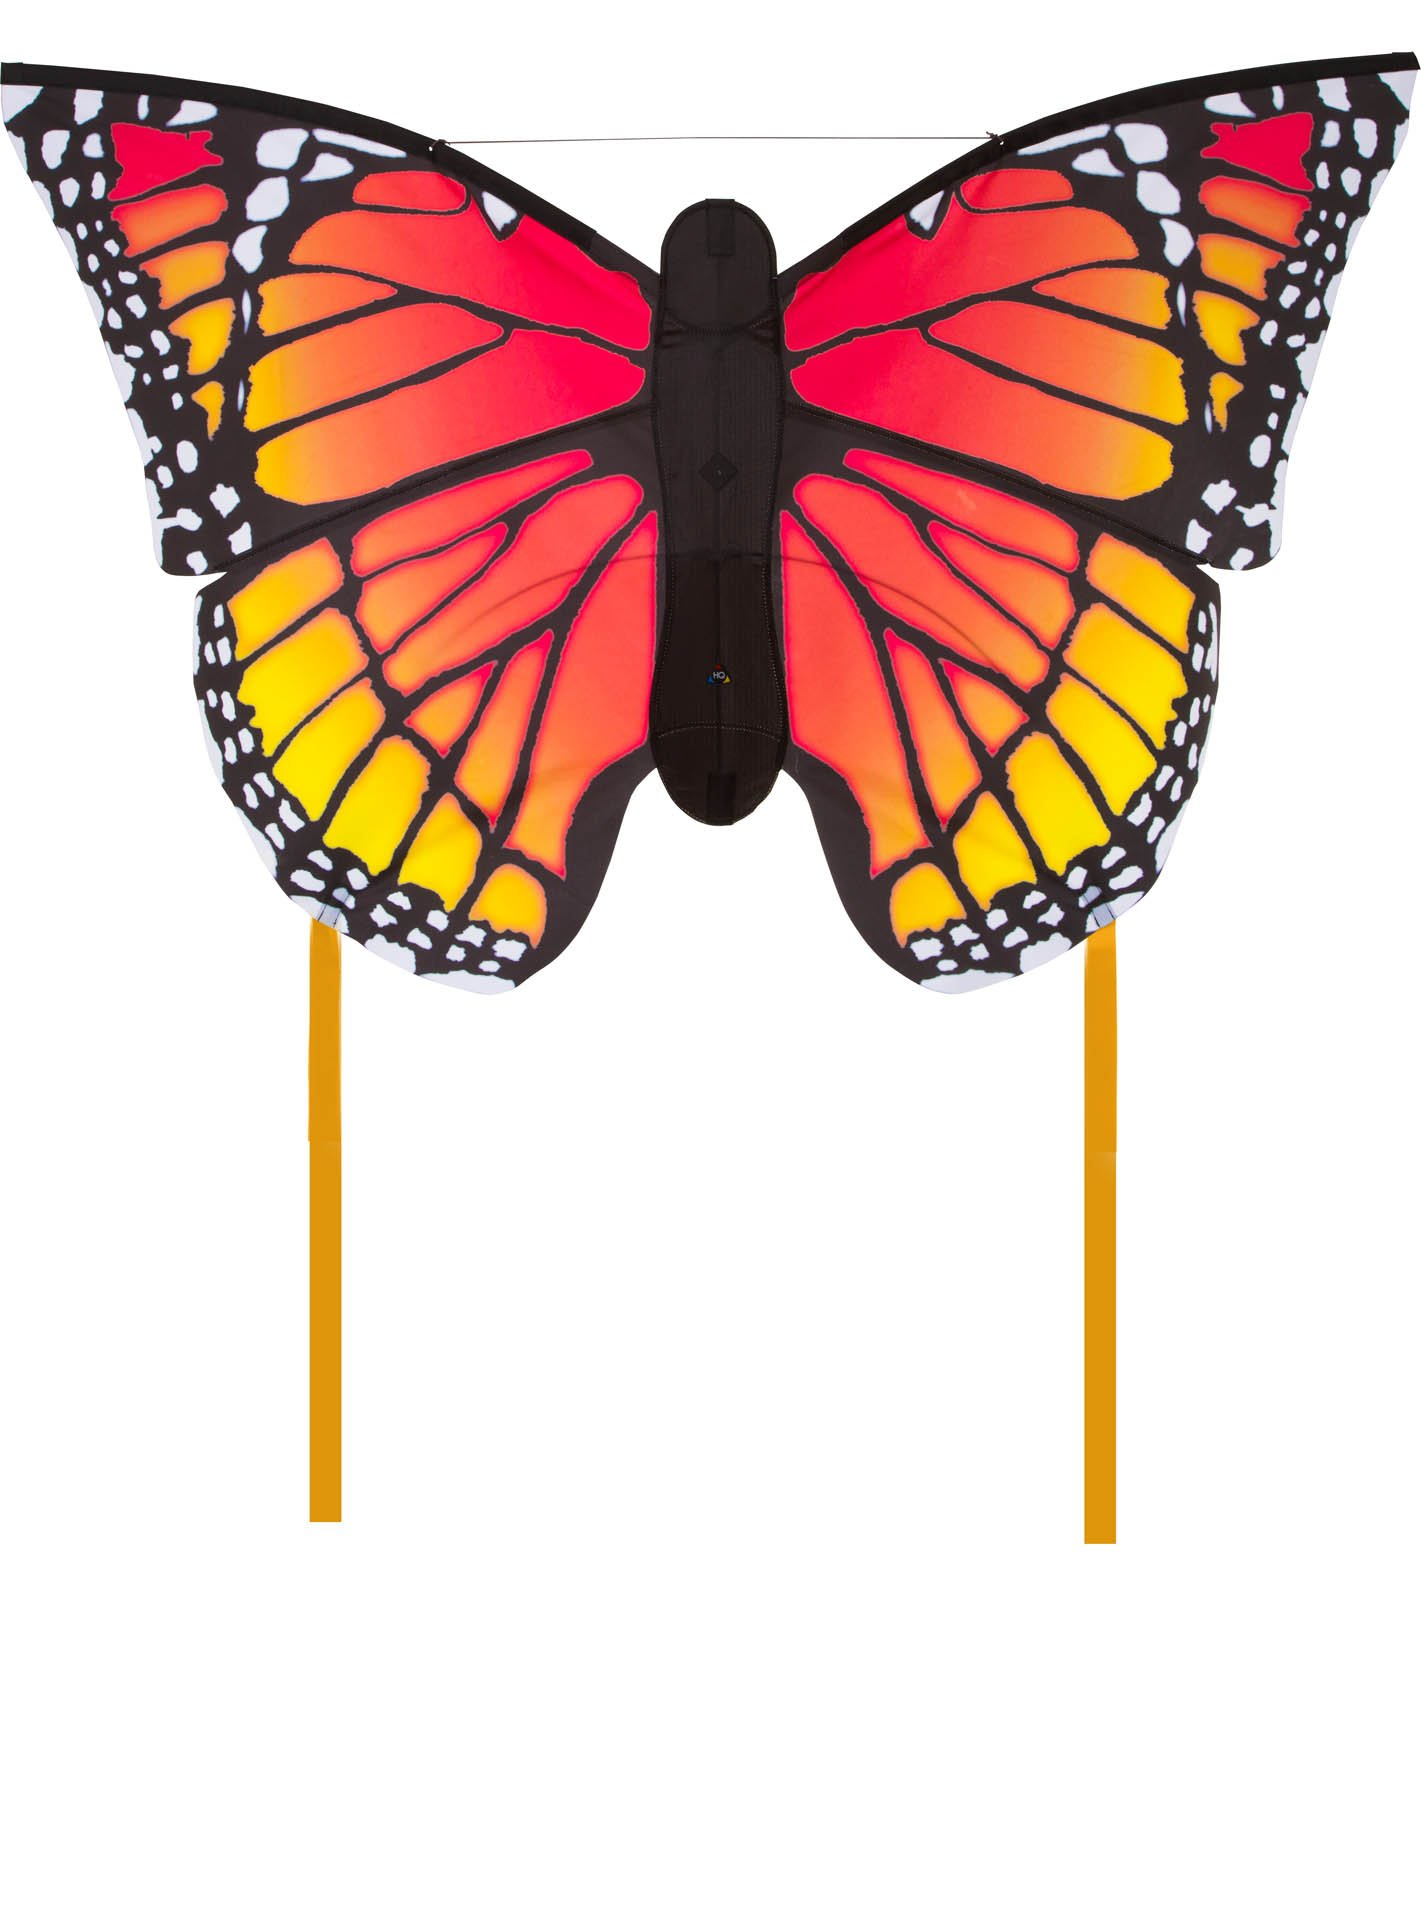 HQ Kites Monarch L Butterfly Kite   50 Inch Single - Line Kite with Tail - Active Outdoor Fun for Ages 5 and Up